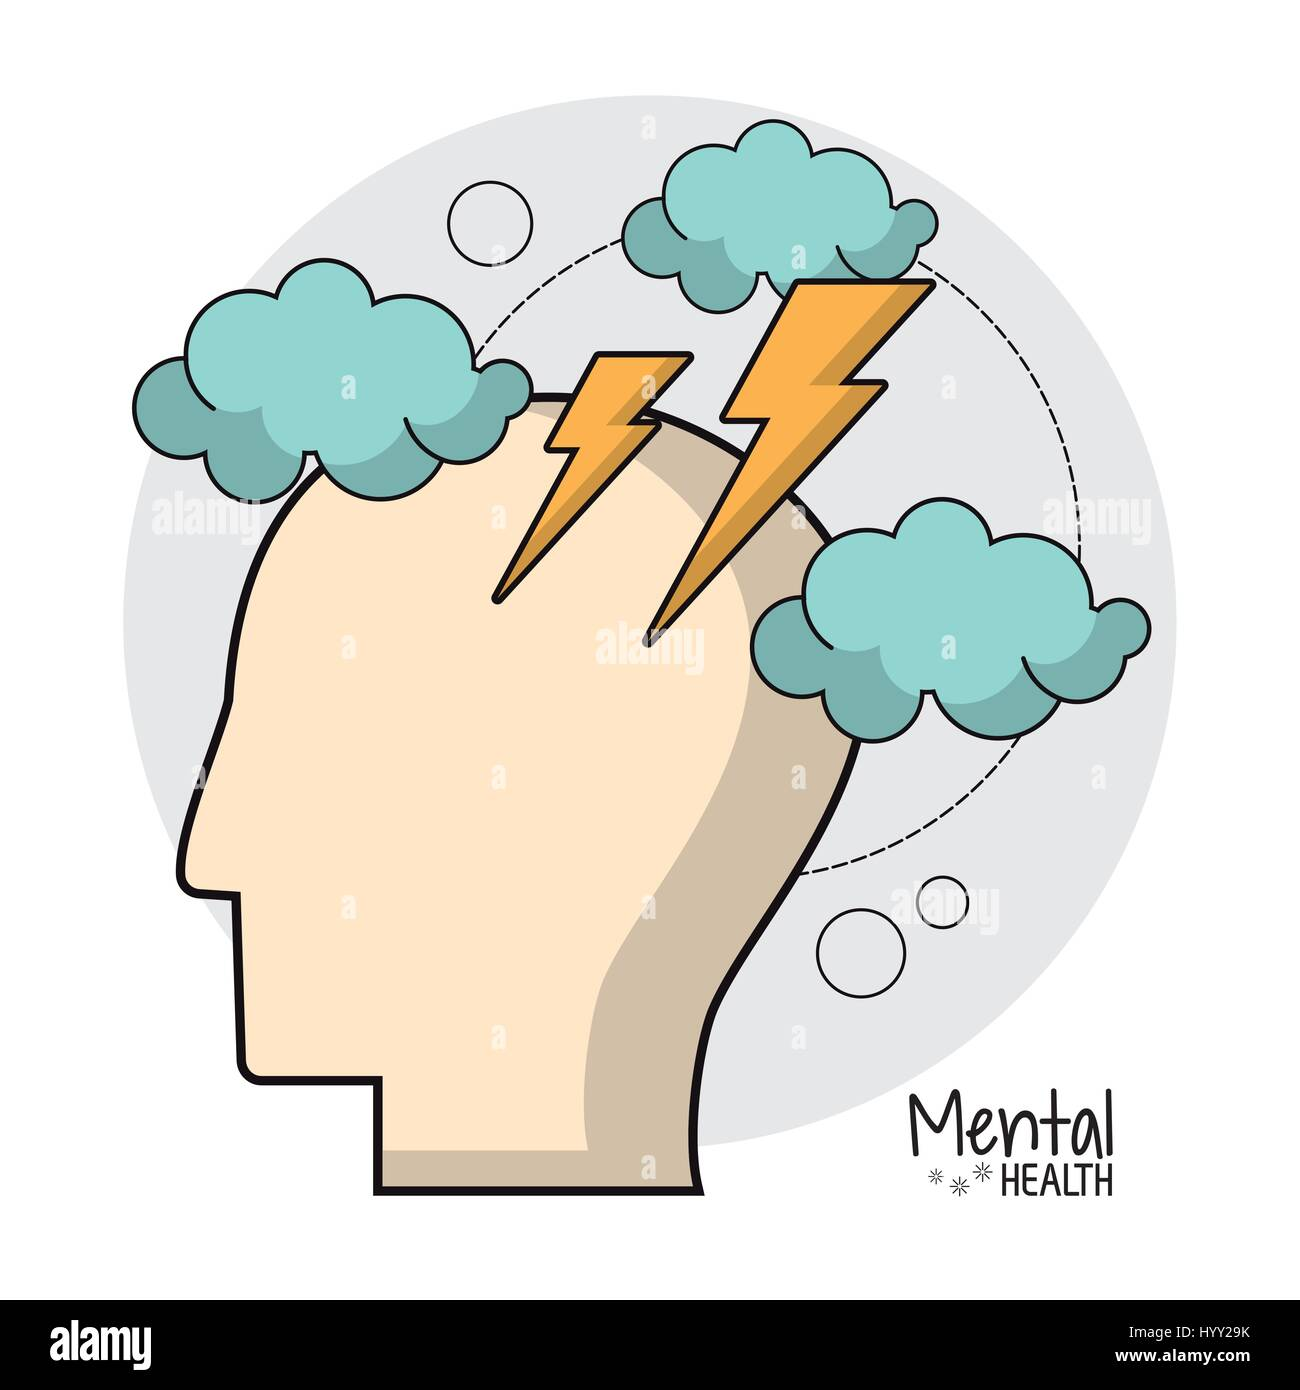 mental health brain storm ideas - Stock Image